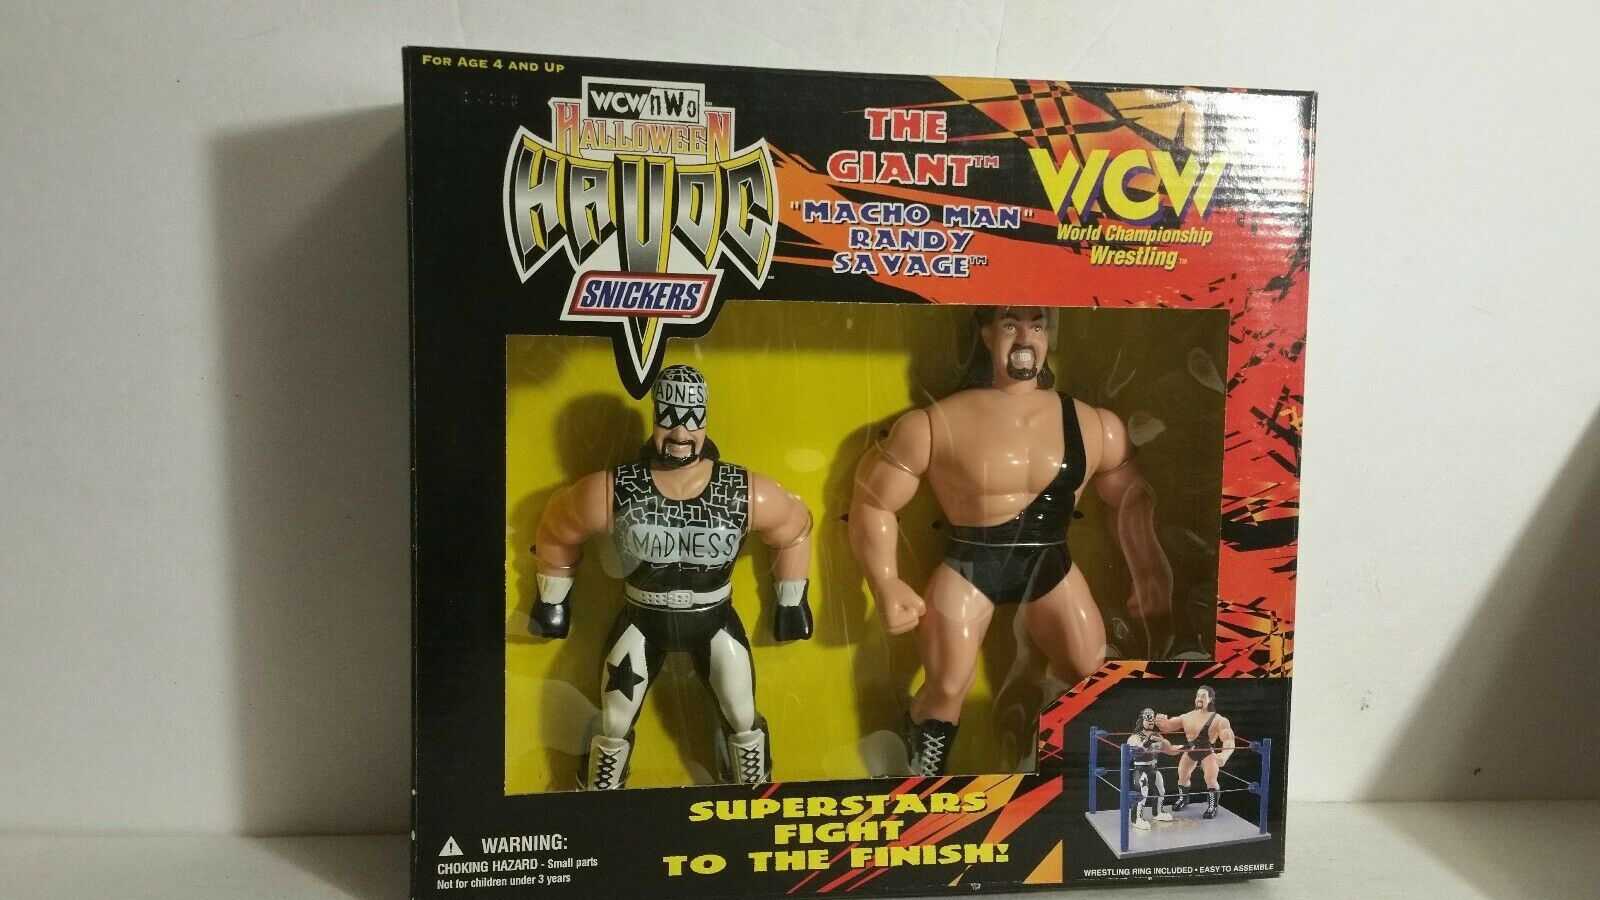 WCW nWo HALLOWEEN HAVOC THE GIANT MACHO MAN ACTION FIGURE SET(034)